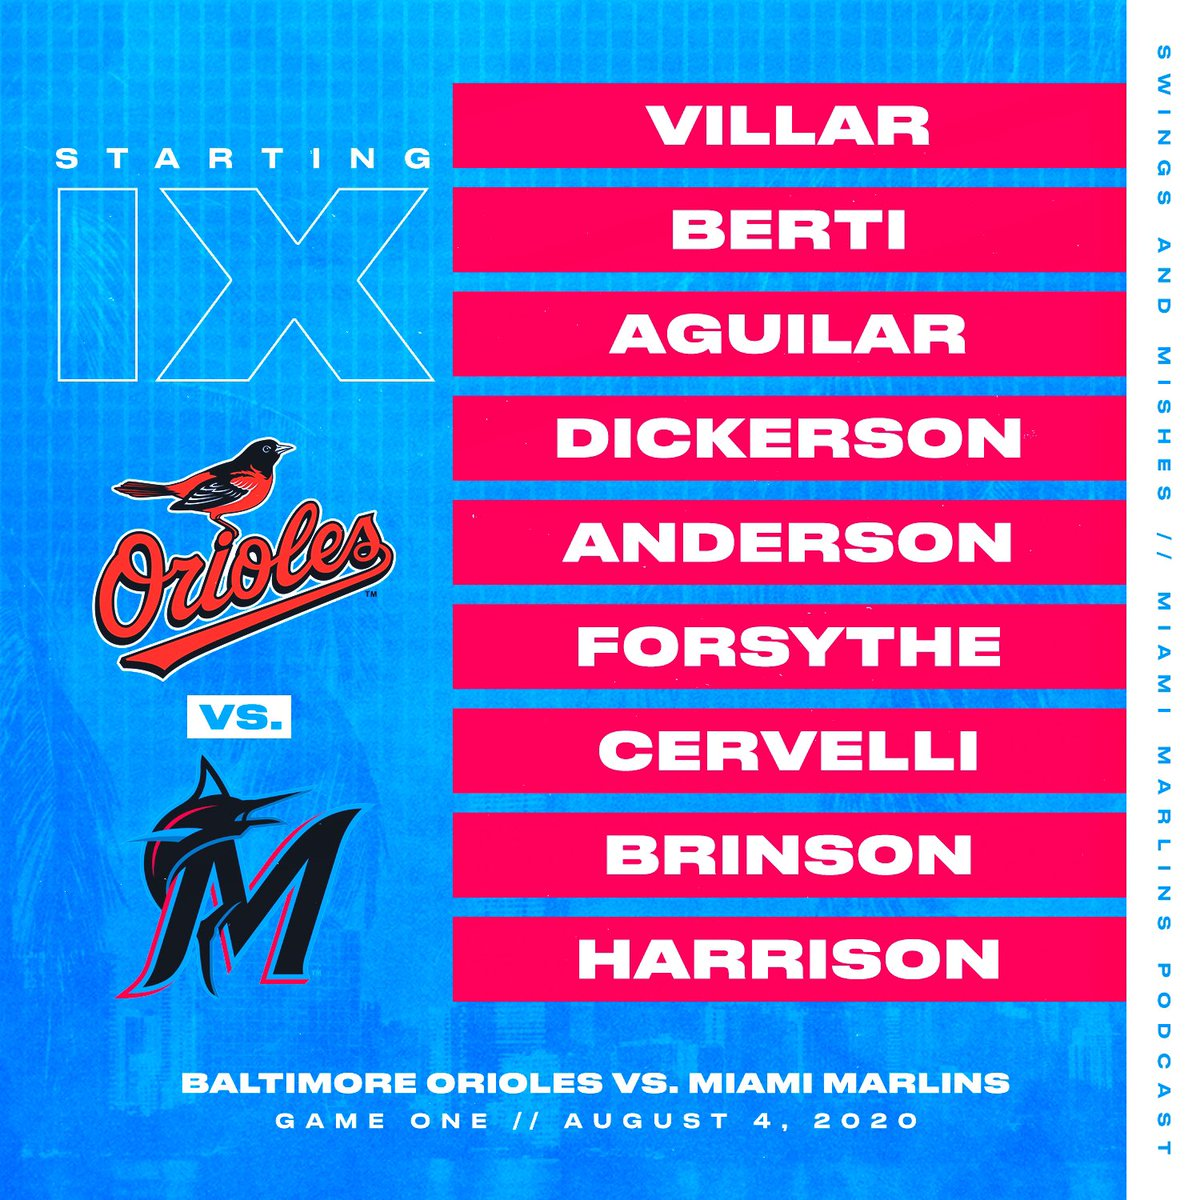 🗣 MARLINS BASEBALL IS BACK • Game 4 of 60 • Marlins debut for Logan Forsythe, season debut for Lewis Brinson, and MLB debut (!!!) for Monte Harrison • The starting 9 behind starting pitcher Pablo López 💫 https://t.co/boS8zhI9i4